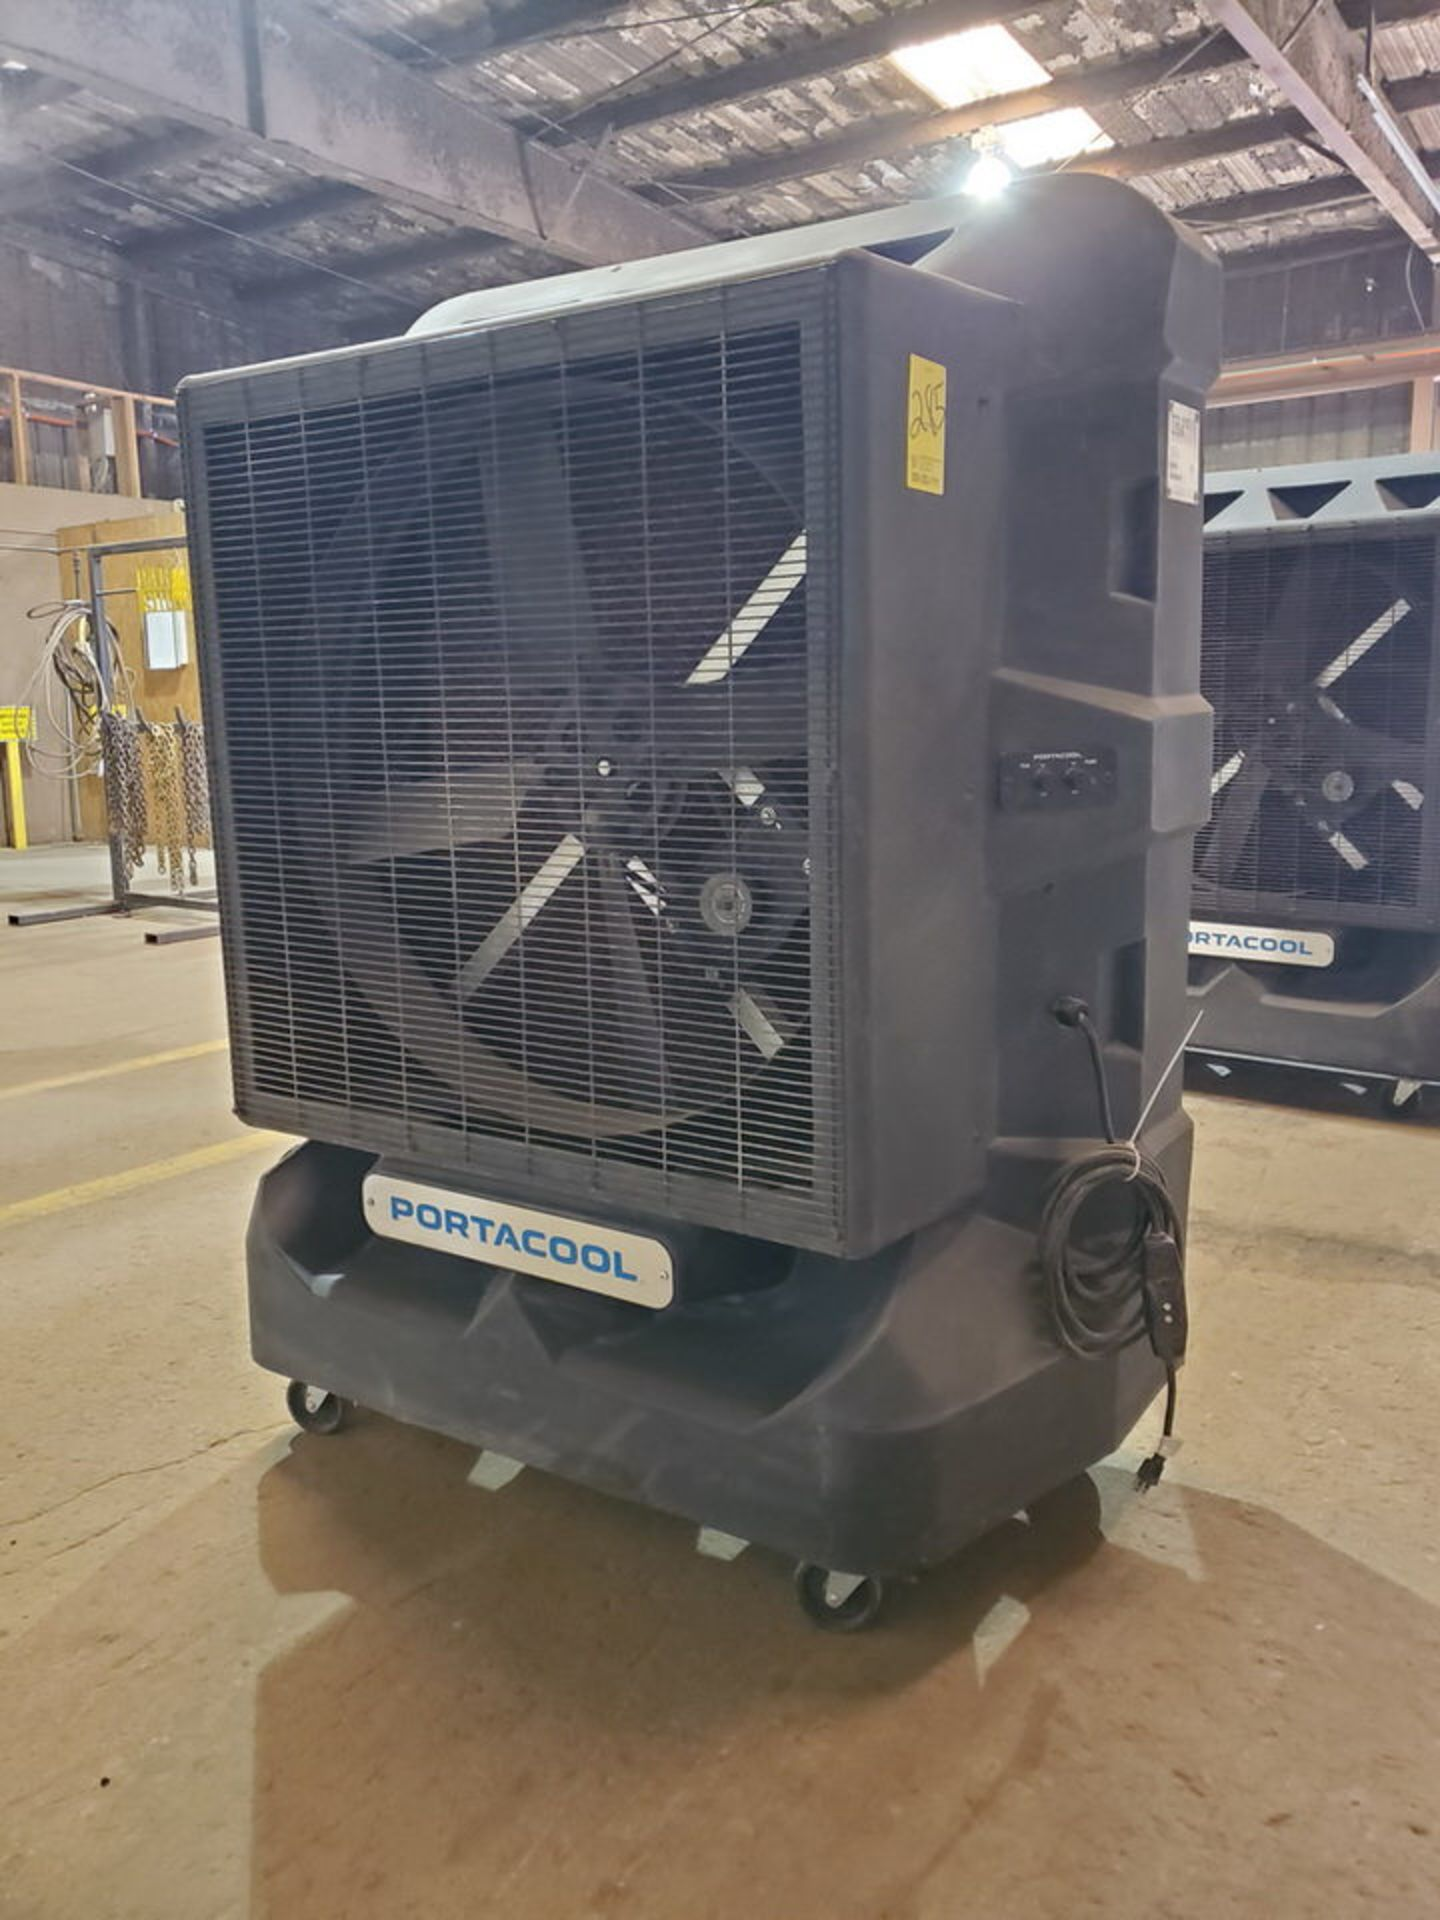 Portacool Cyclone 160 Portable Evaporative Cooler 115V, 60HZ, 7.3A - Image 4 of 7